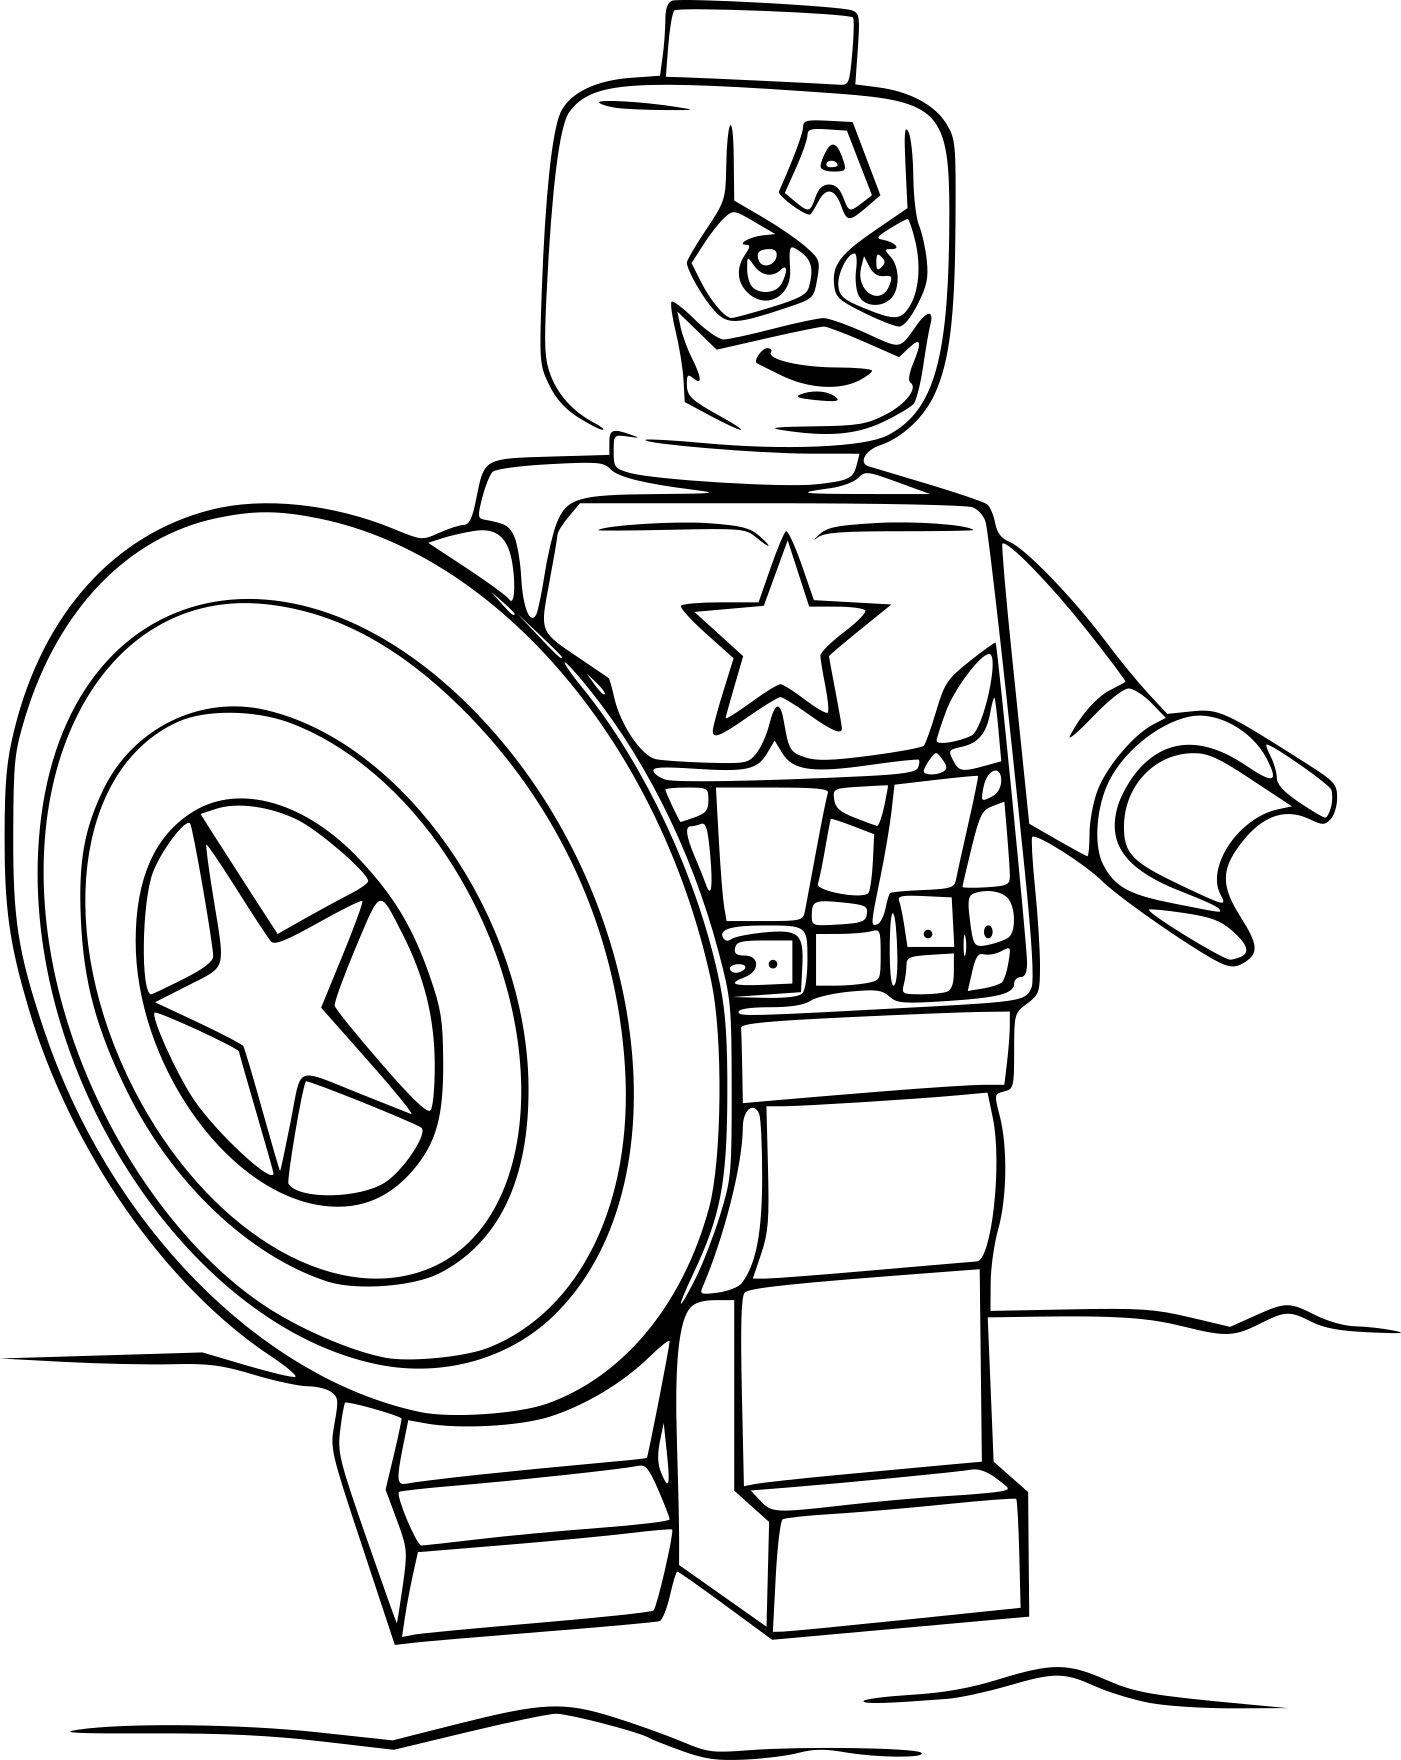 Pin By Chris Burrows On Pirografiya Lego Coloring Pages Superhero Coloring Pages Avengers Coloring Pages